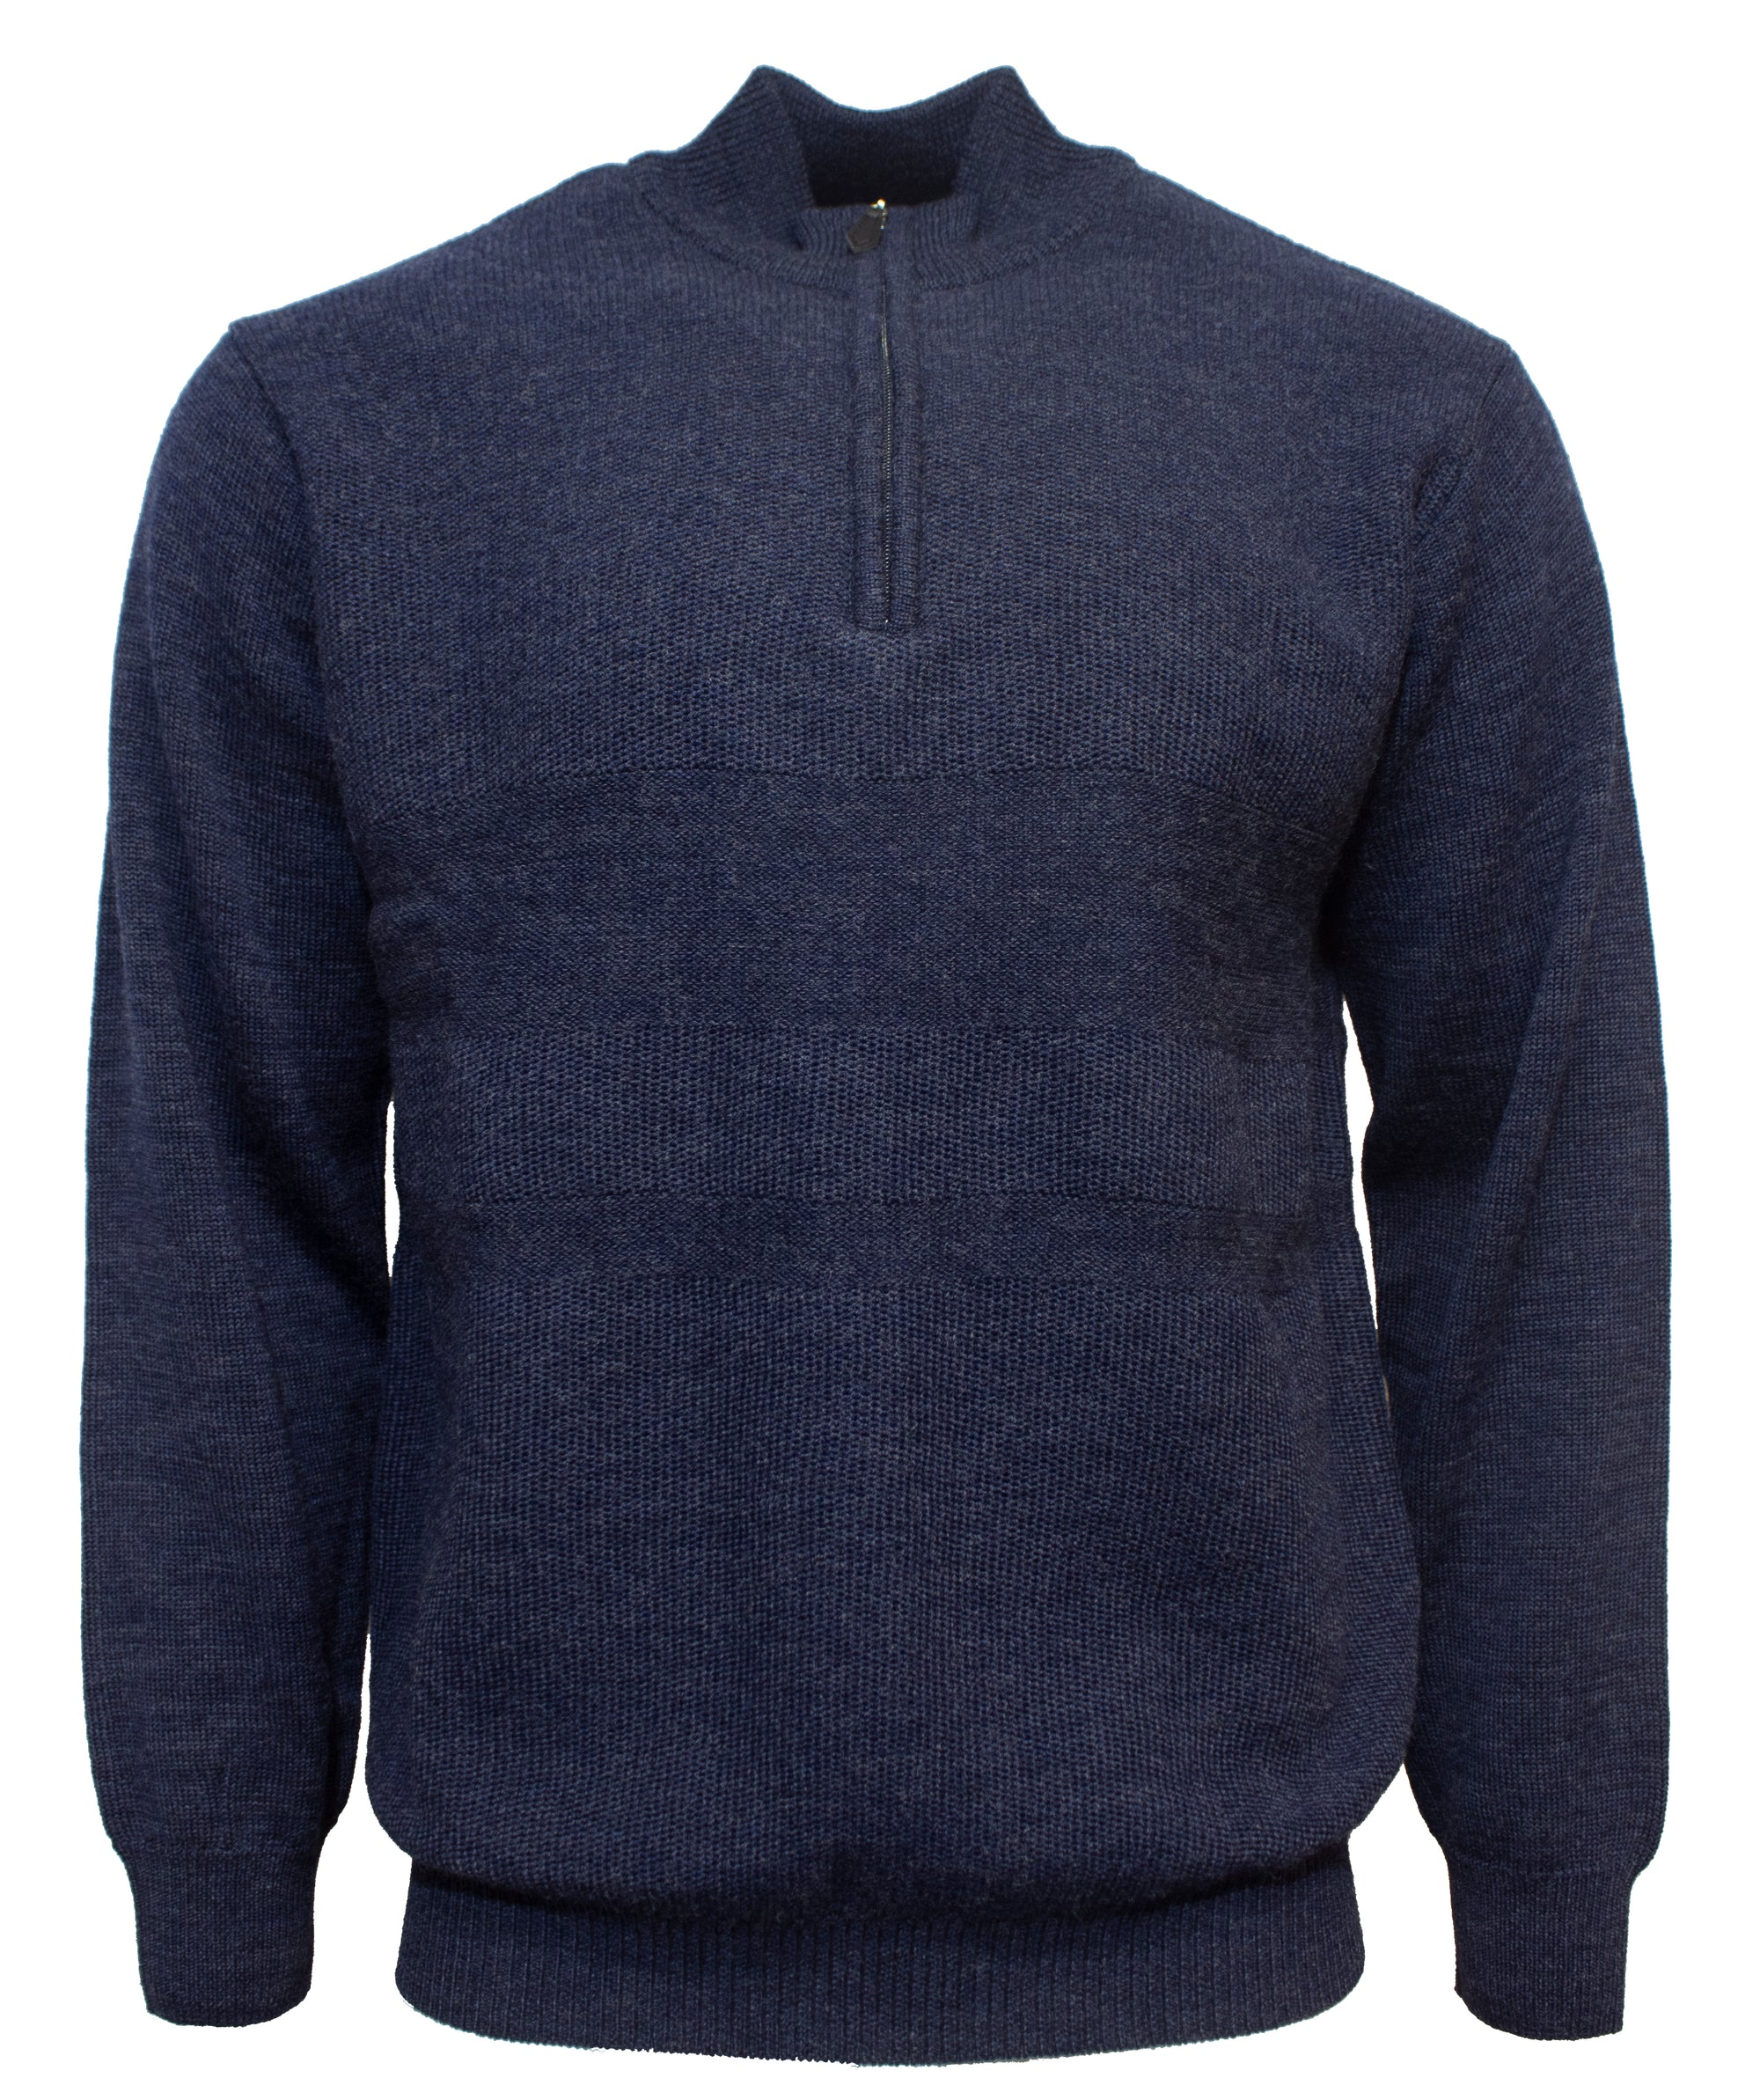 Ansett Pure Wool Textured Knit